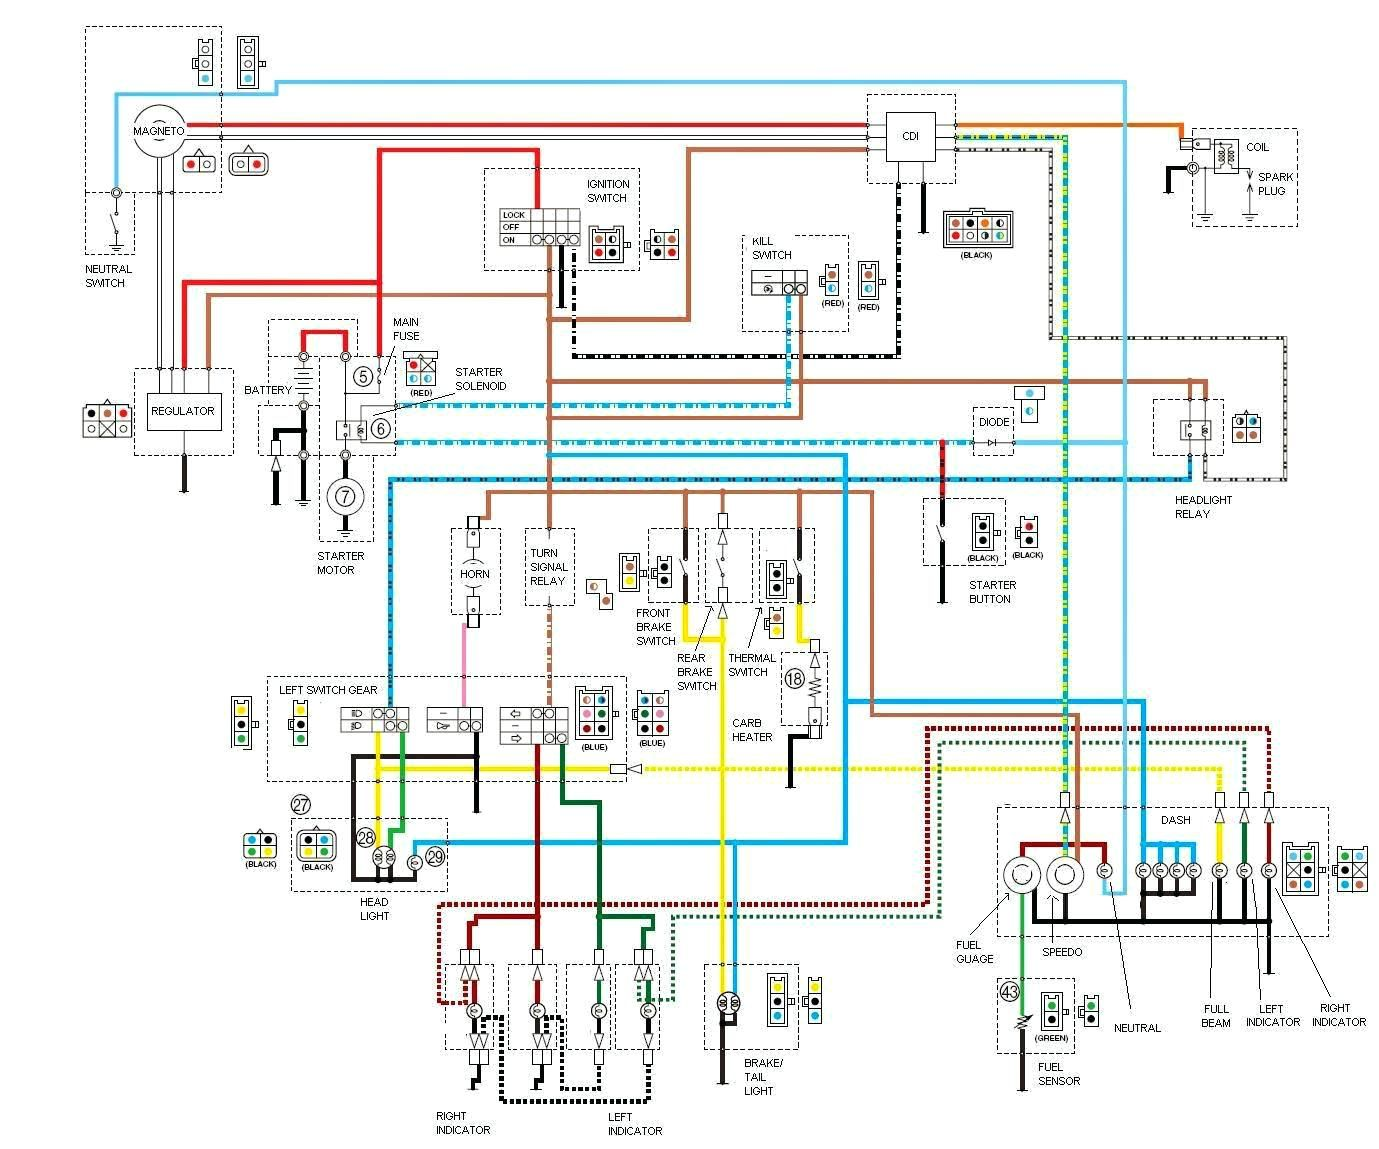 medium resolution of guitar live sound setup diagram fantastic band pa system wiring schematic contemporary comfortable ideas electrical archived on wiring diagram category with